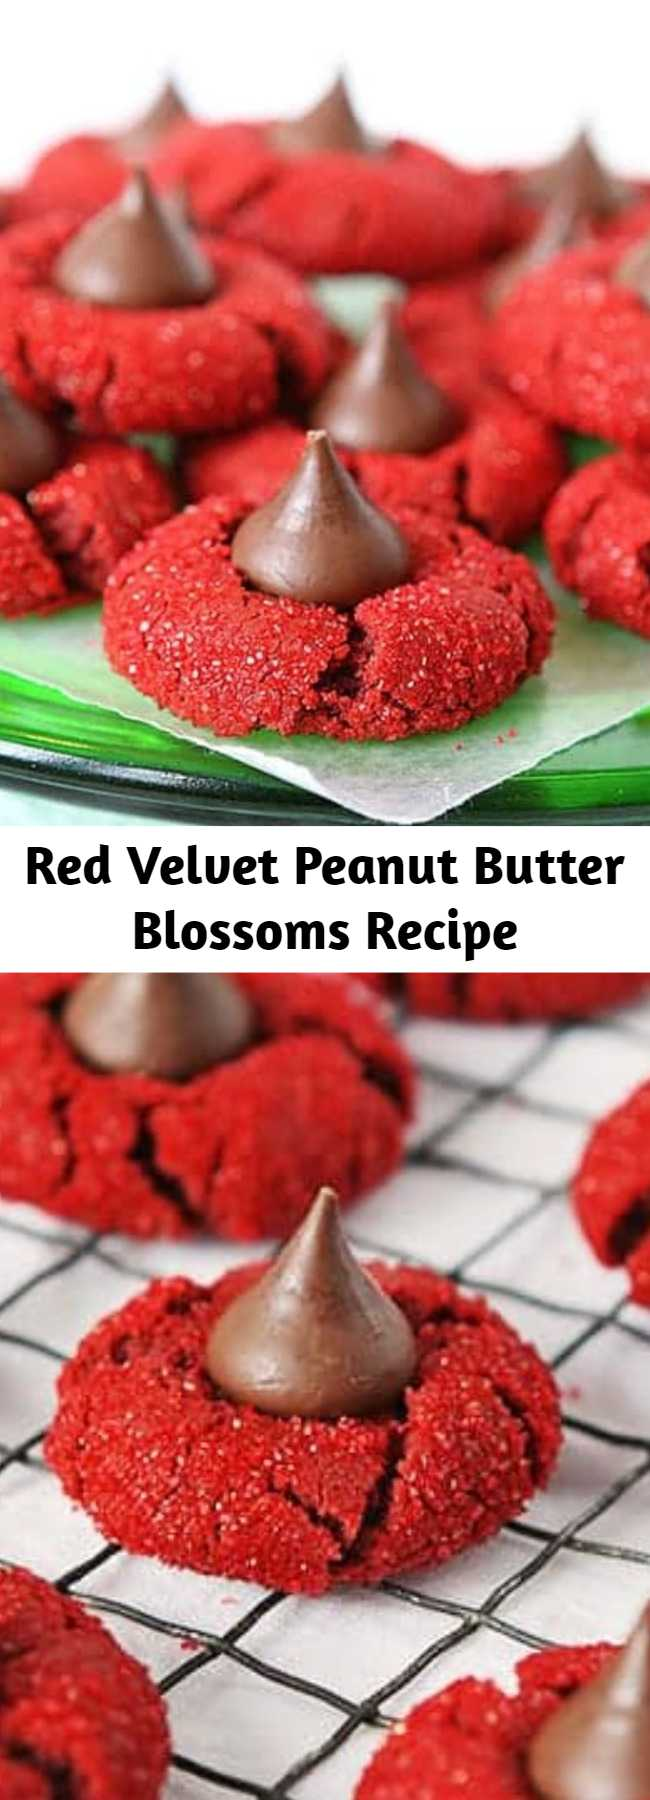 Red Velvet Peanut Butter Blossoms Recipe - This is a soft cookie that is crisp on the outside and chewy on the inside. These delicious cookies are so fun to share! #redvelvetpeanutbutterblossoms #redvelvetkisscookies #kisscookies #cookies #cookierecipes #baking #christmascookies #christmascookieexchange #cookieexchange